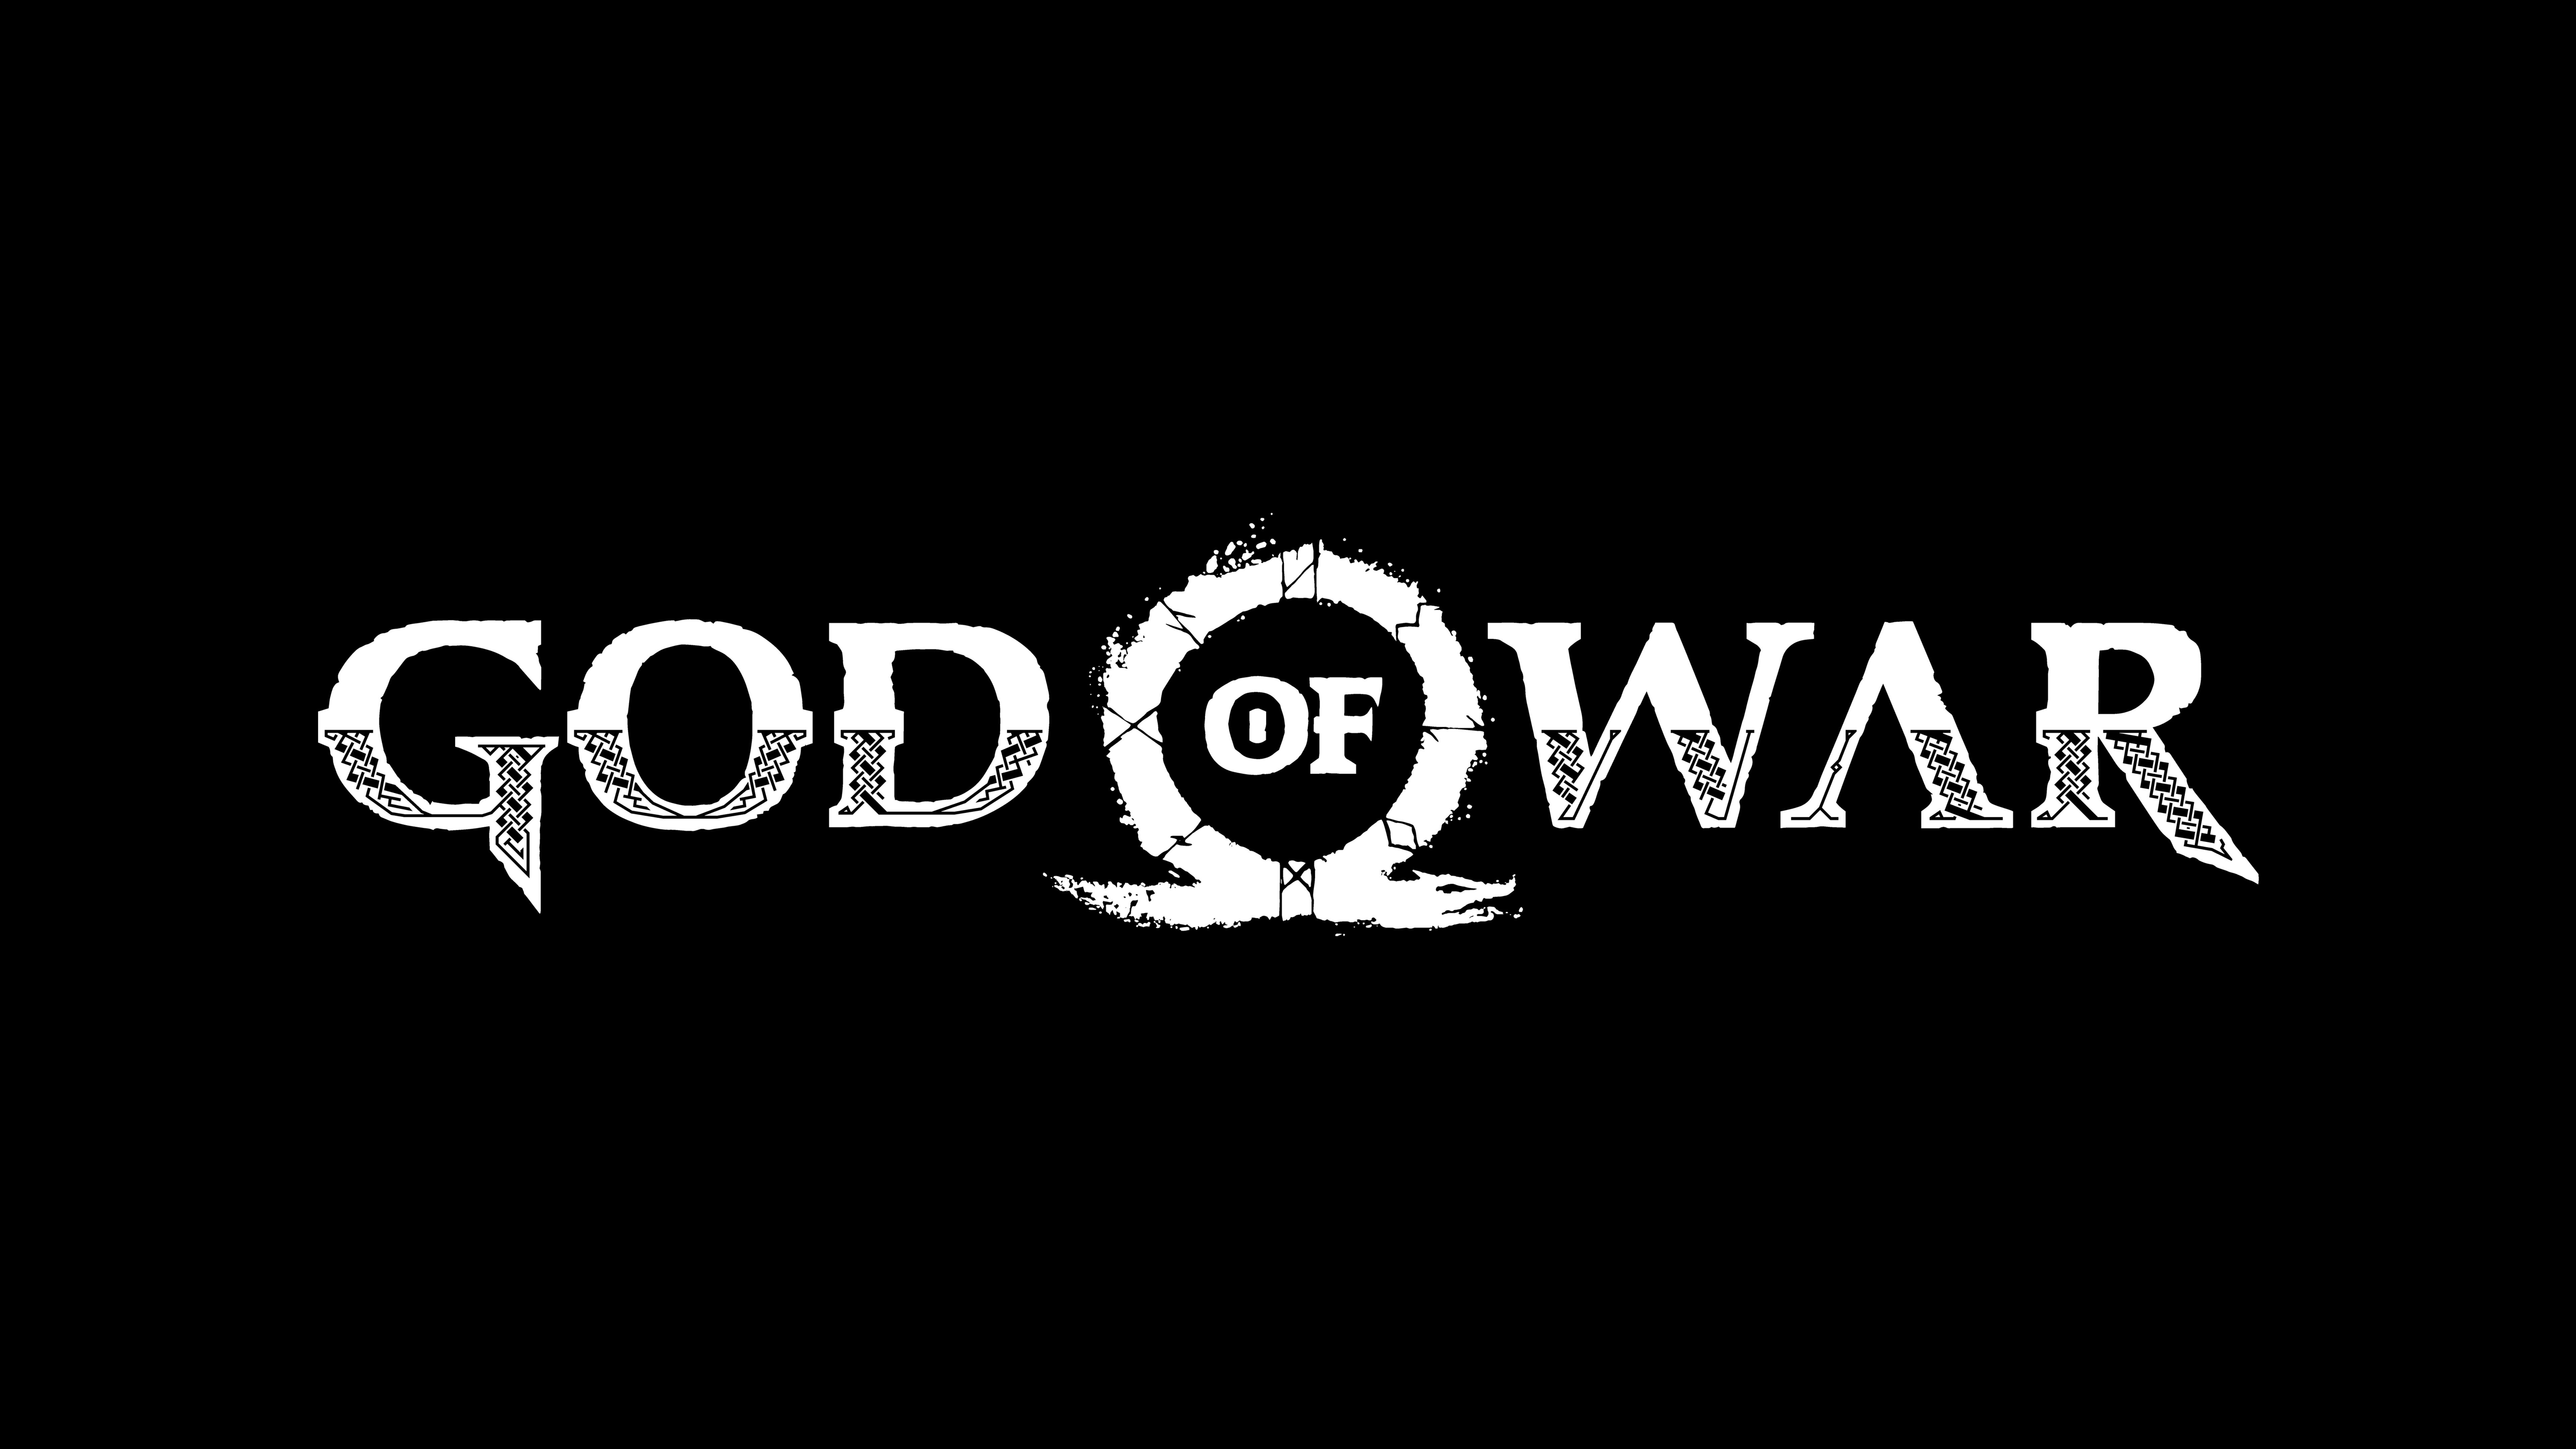 God of War Logo Wallpapers - Top Free God of War Logo ...